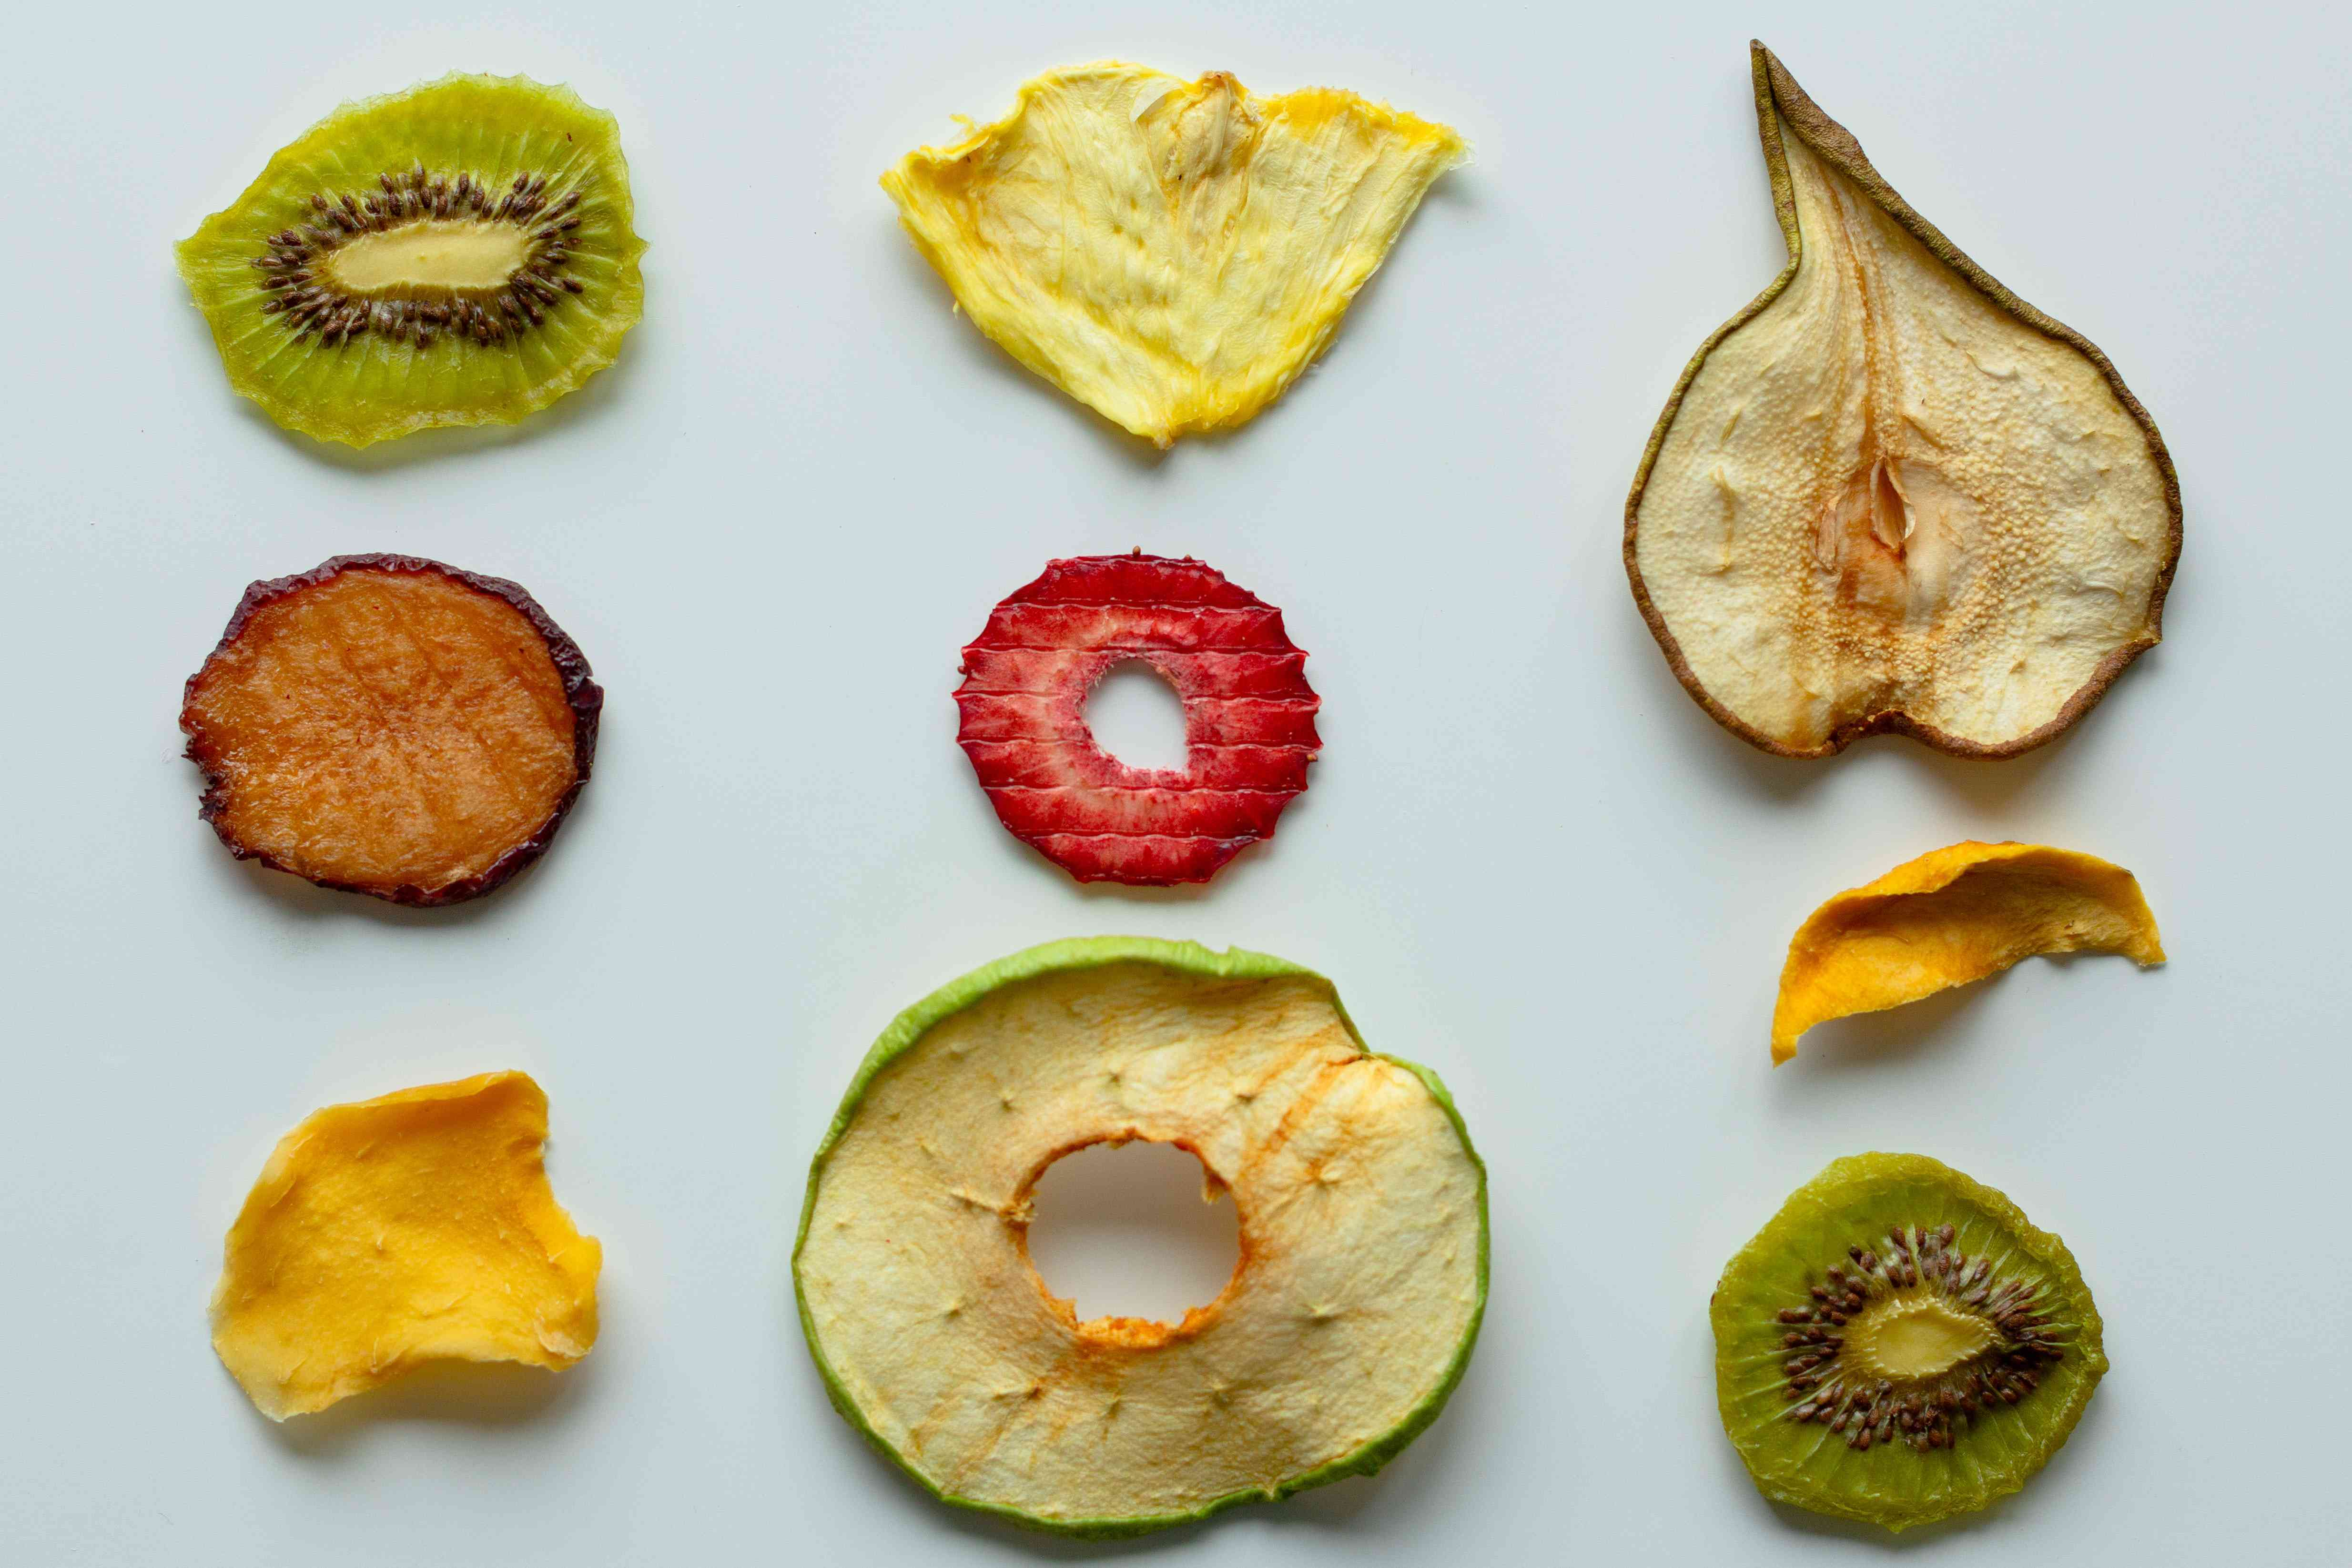 Slices of dried fruit laid out on white surface